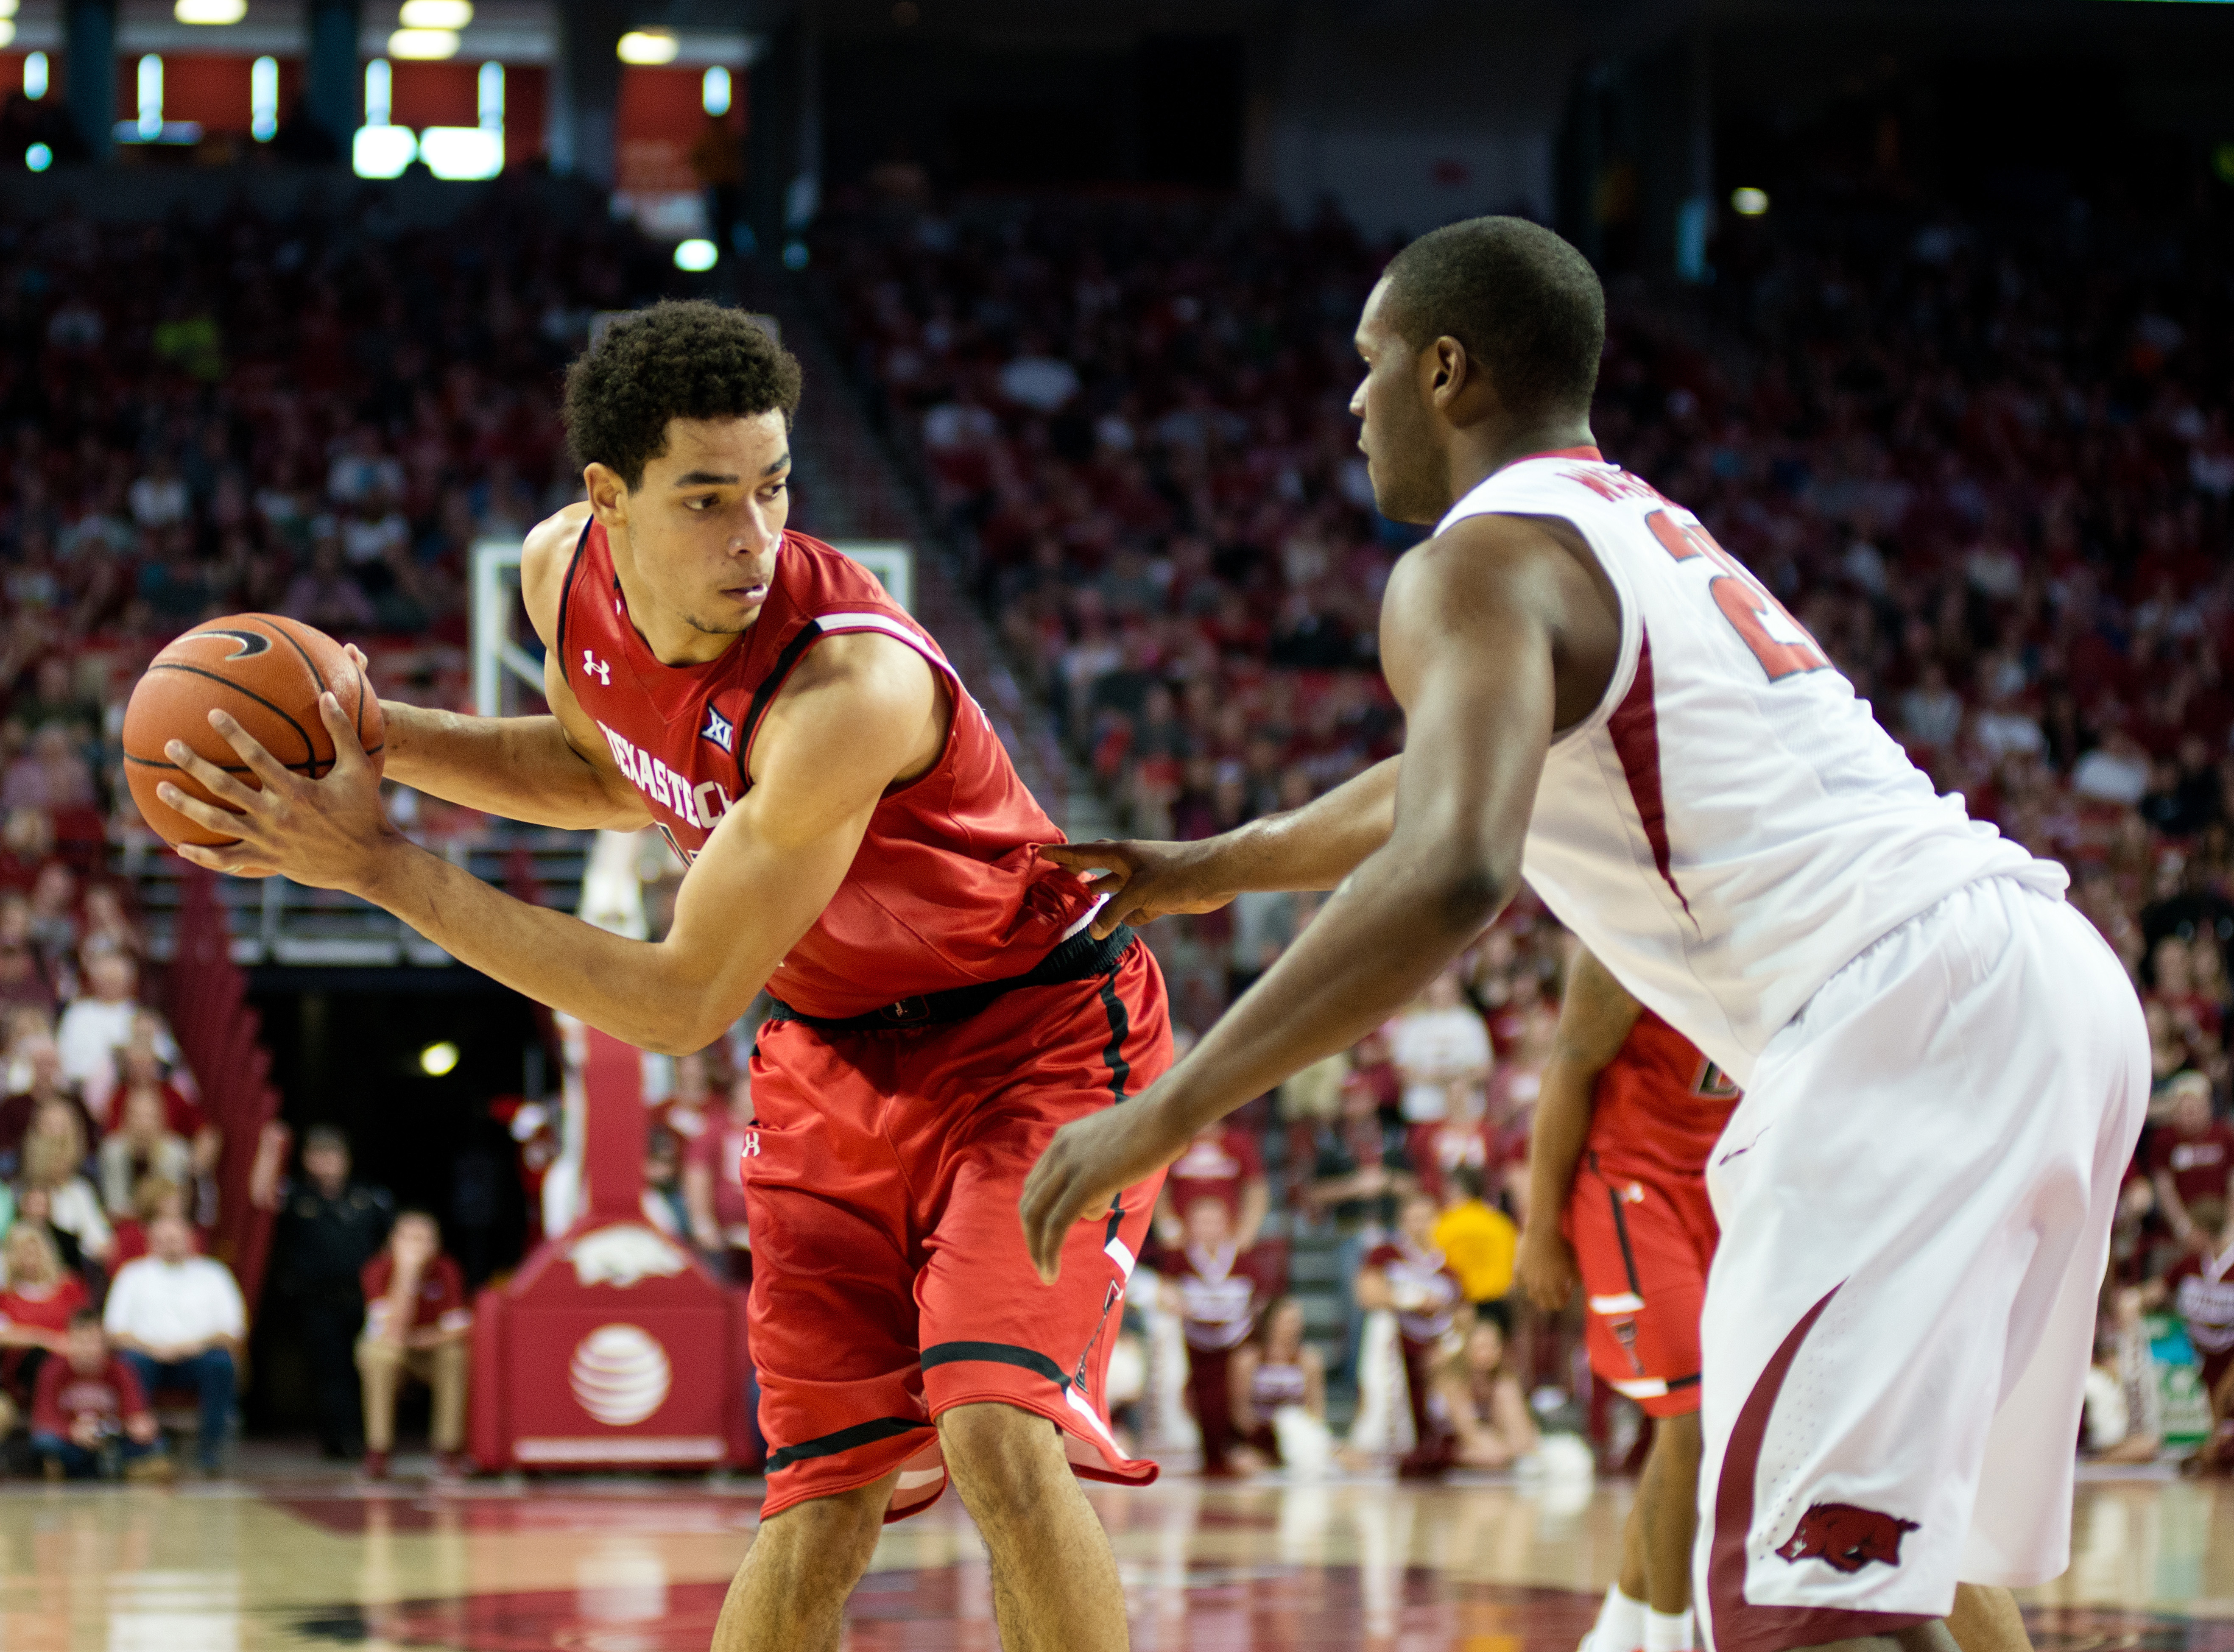 Arkansas' Manuale Watkins (21) defends Texas Tech's Zach Smith (11) in the second half of an NCAA college basketball game in Fayetteville, Ark., Saturday, Jan. 30, 2016. Arkansas won 75-68. (AP Photo/Sarah Bentham)